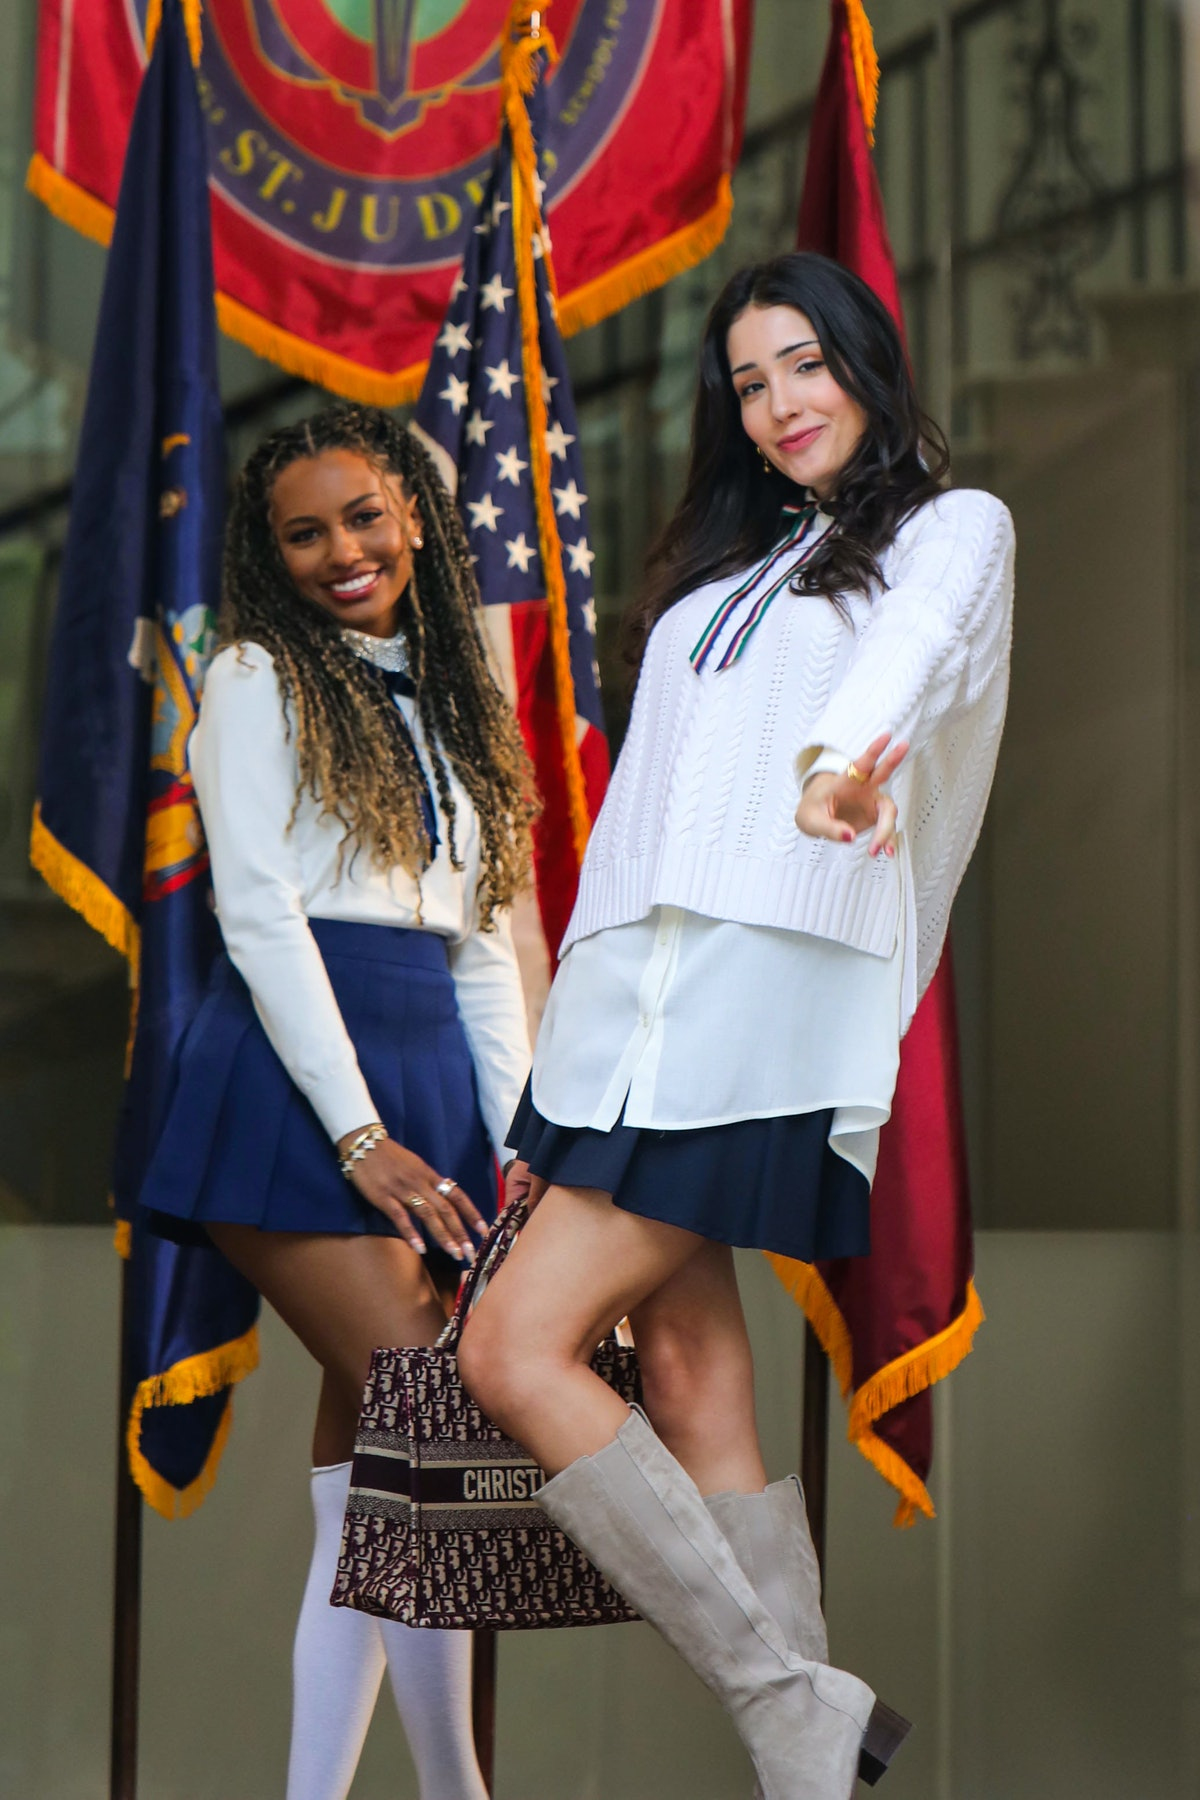 Savannah Smith and Zion Moreno on the set of the Gossip Girl reboot